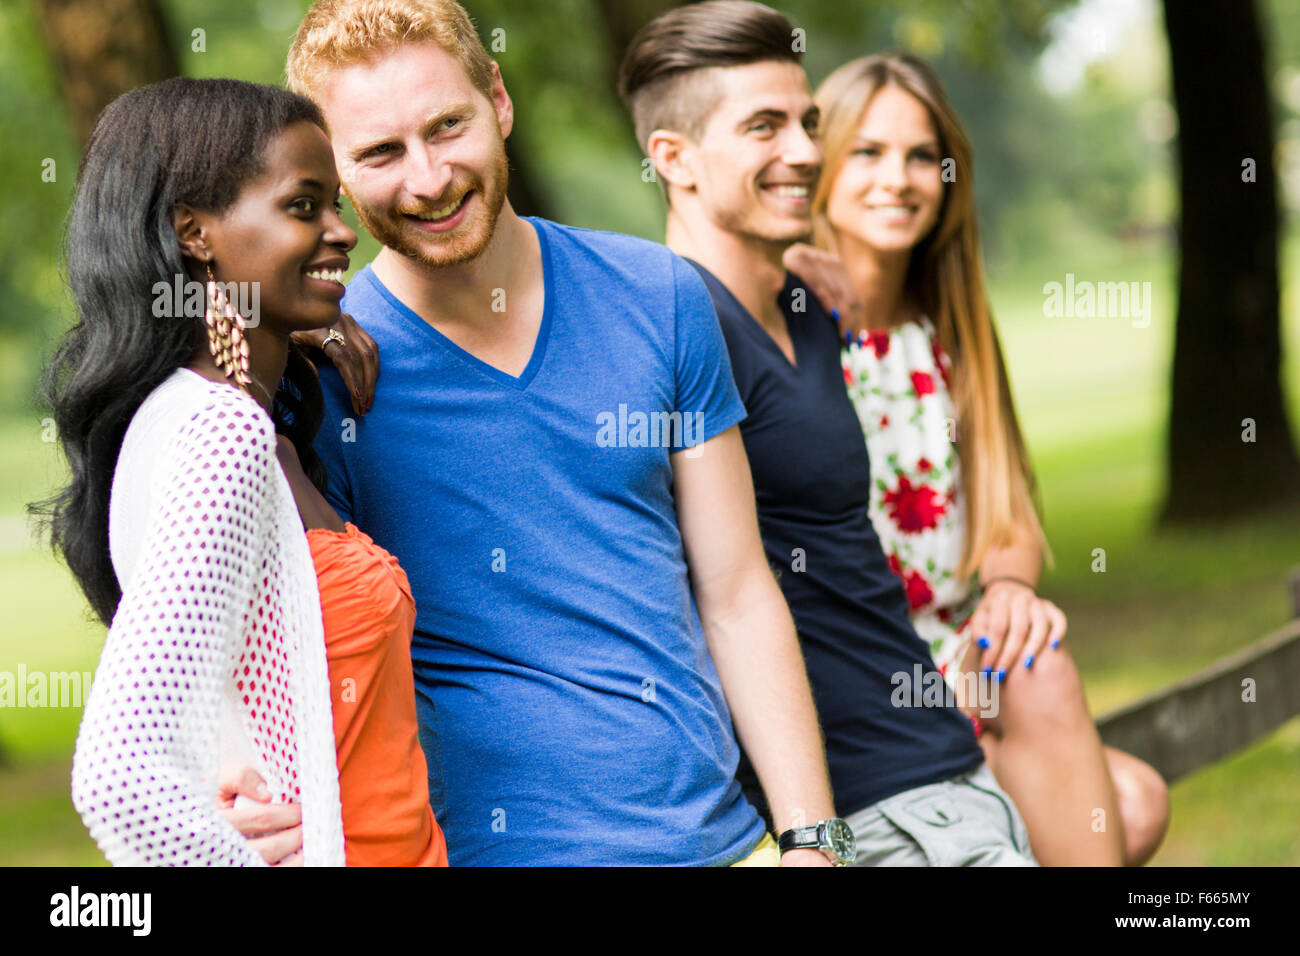 Group of happy young people in summer - Stock Image